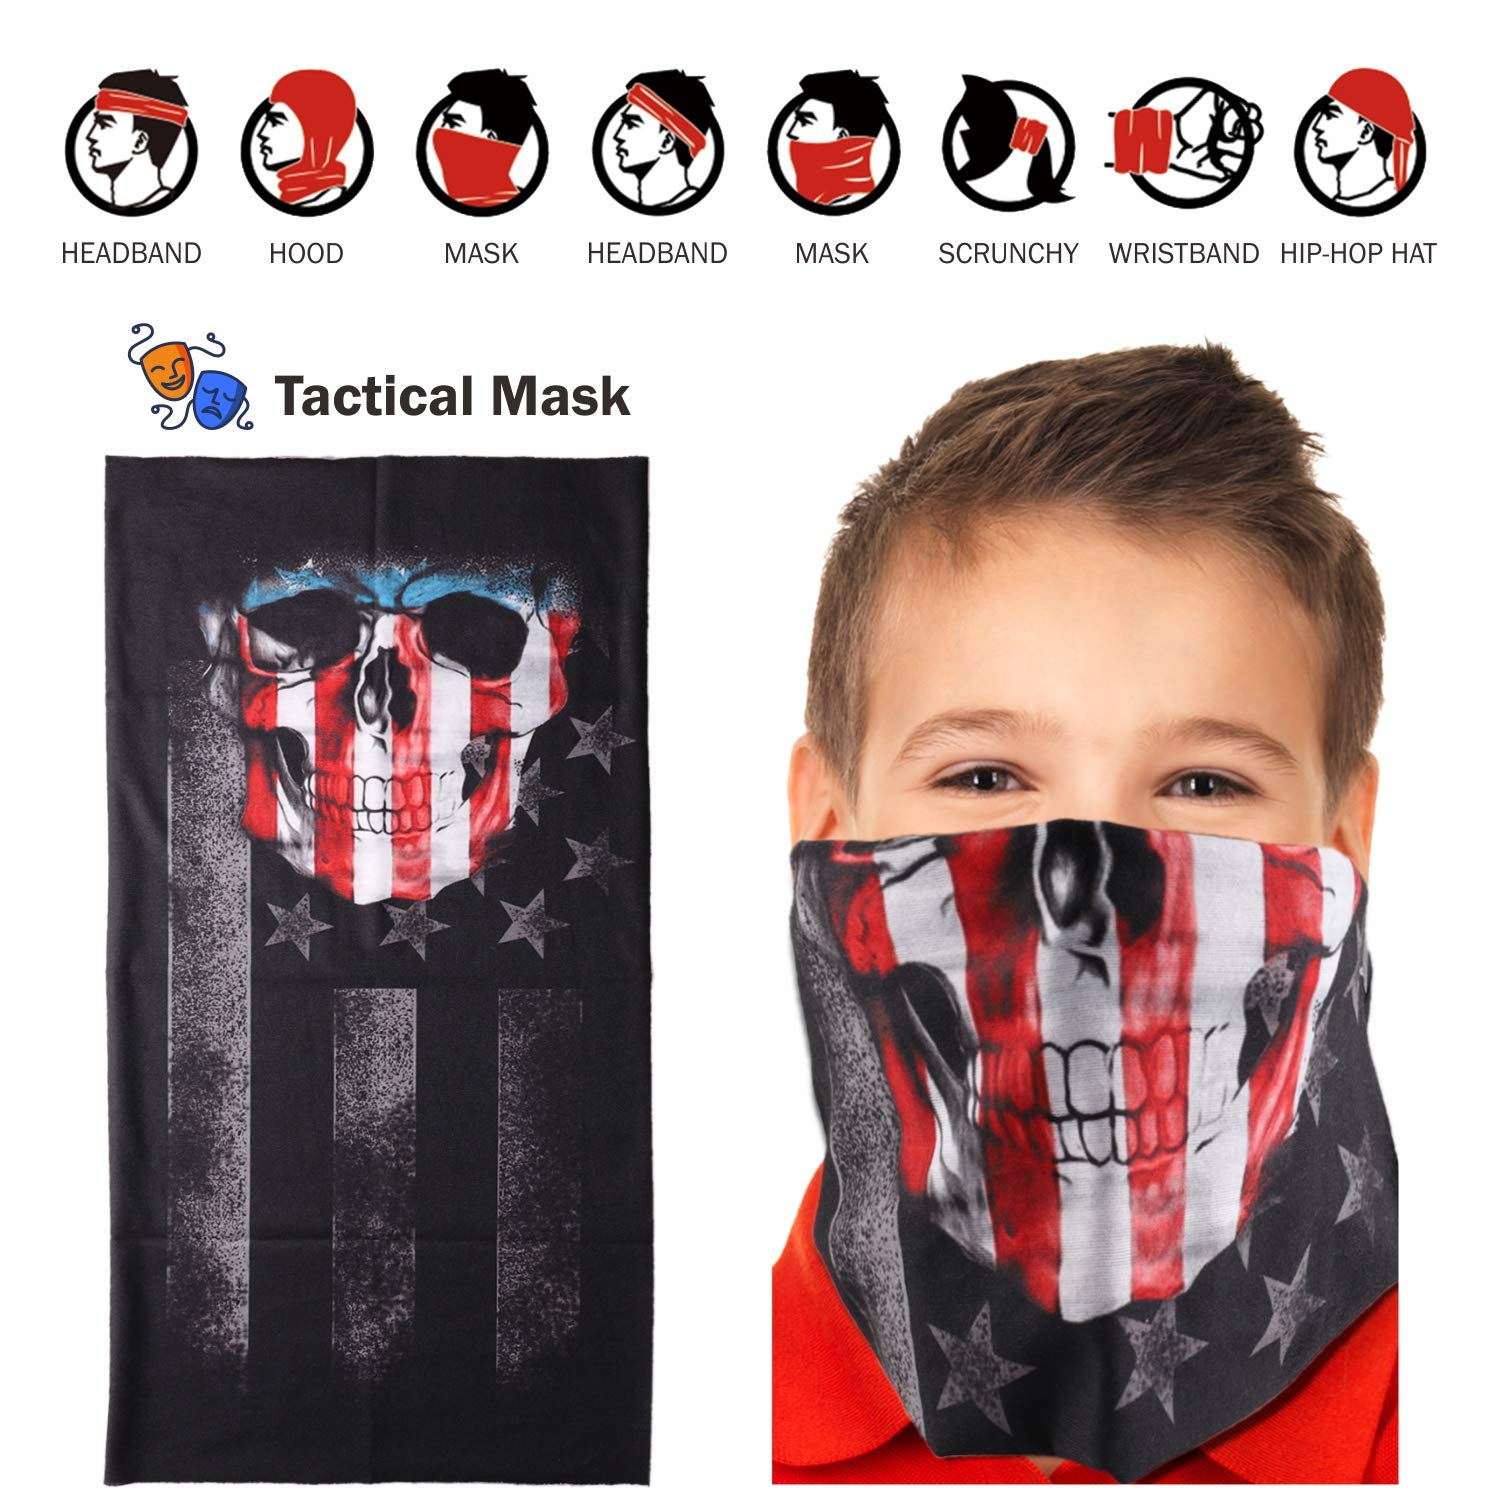 UWANTME Kids Tactical Vest Kit for Nerf Guns N-Strike Elite Series with Refill Darts, Dart Pouch, Reload Clips, Tactical Mask, Wrist Band and Protective Glasses for Boys by UWANTME (Image #6)